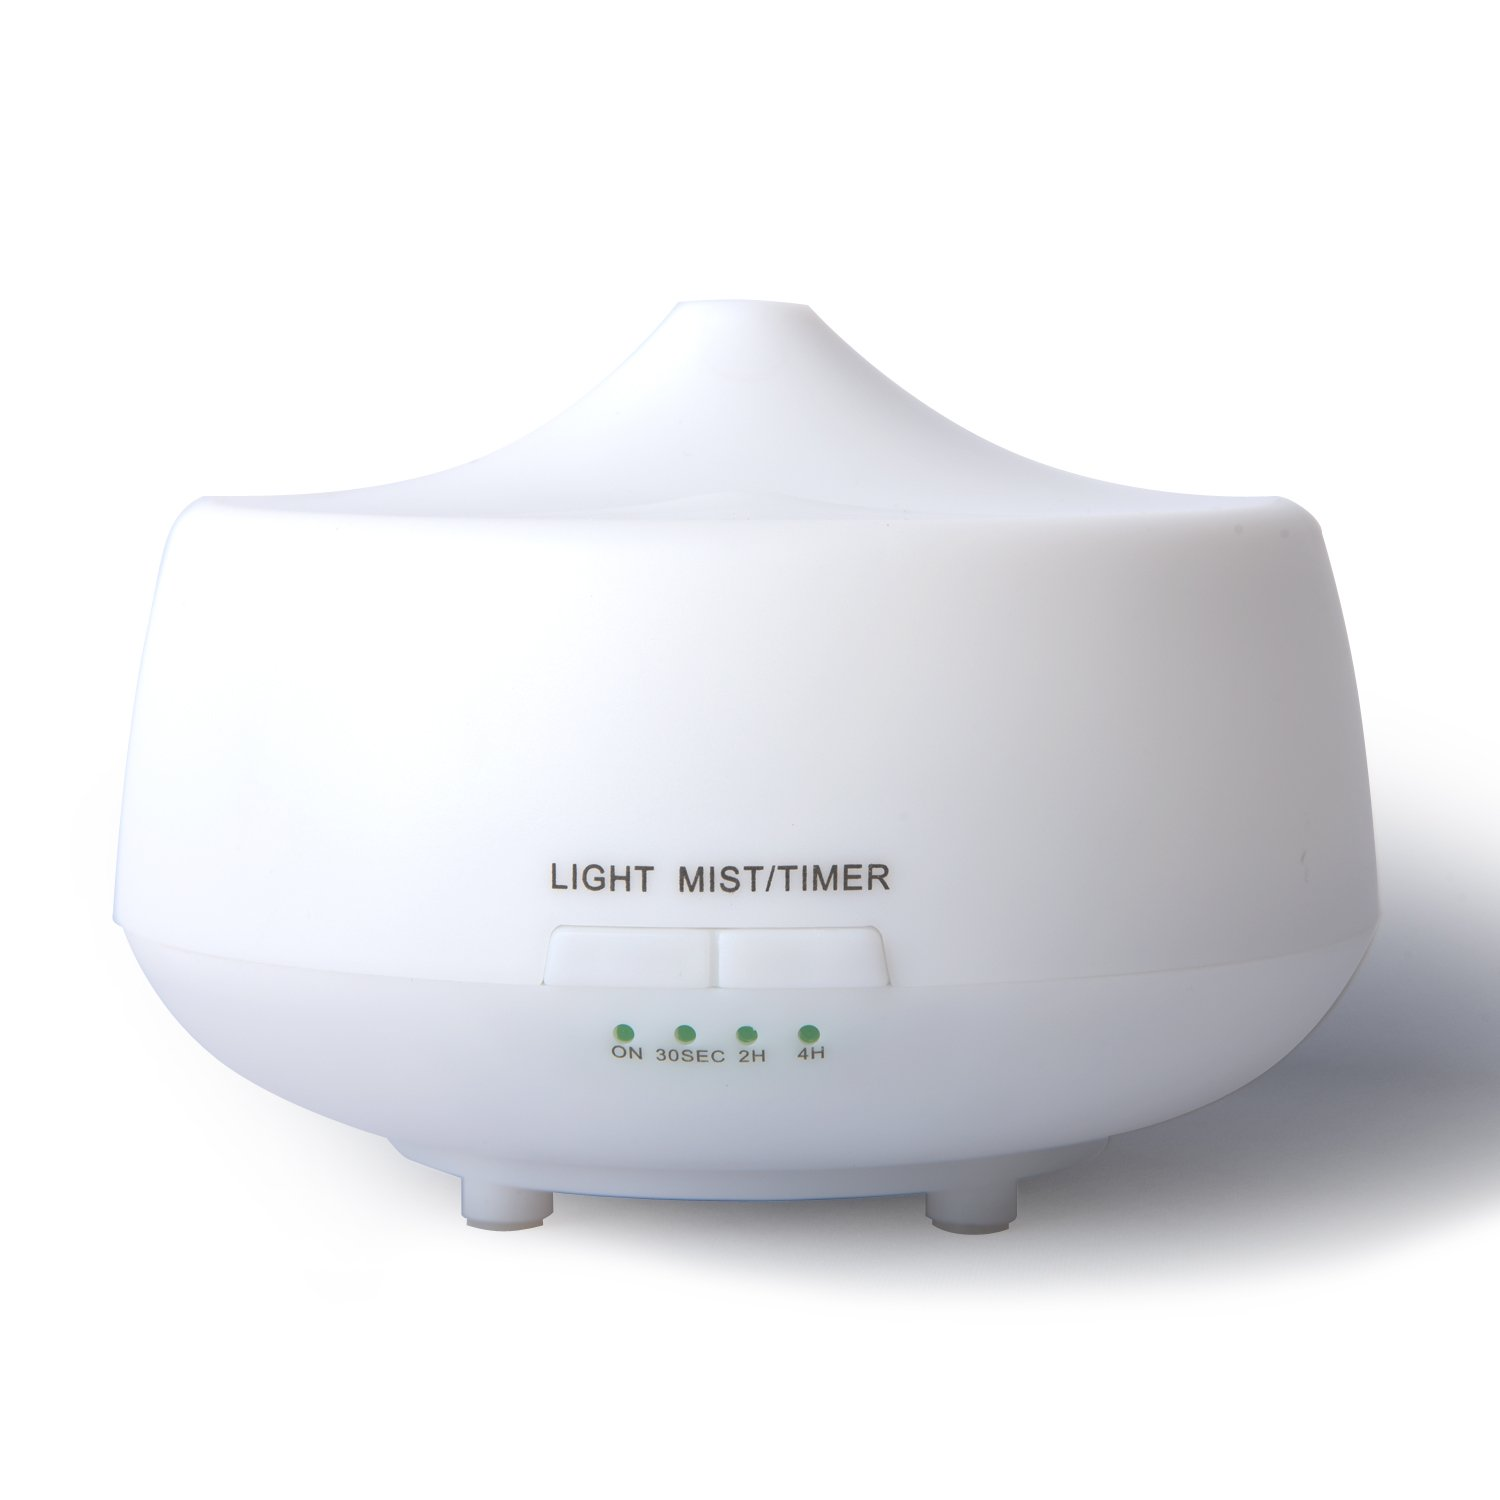 LUJII 250ml Ultrasonic Humidifier Aroma Diffuser, Essential Oil Diffuser, Aromatherapy Purifier, Air Purifier, 7 Color LED lights and Timer Settings, For Home, Yoga, Office, Spa, Bedroom, Baby Room by LUJII (Image #1)